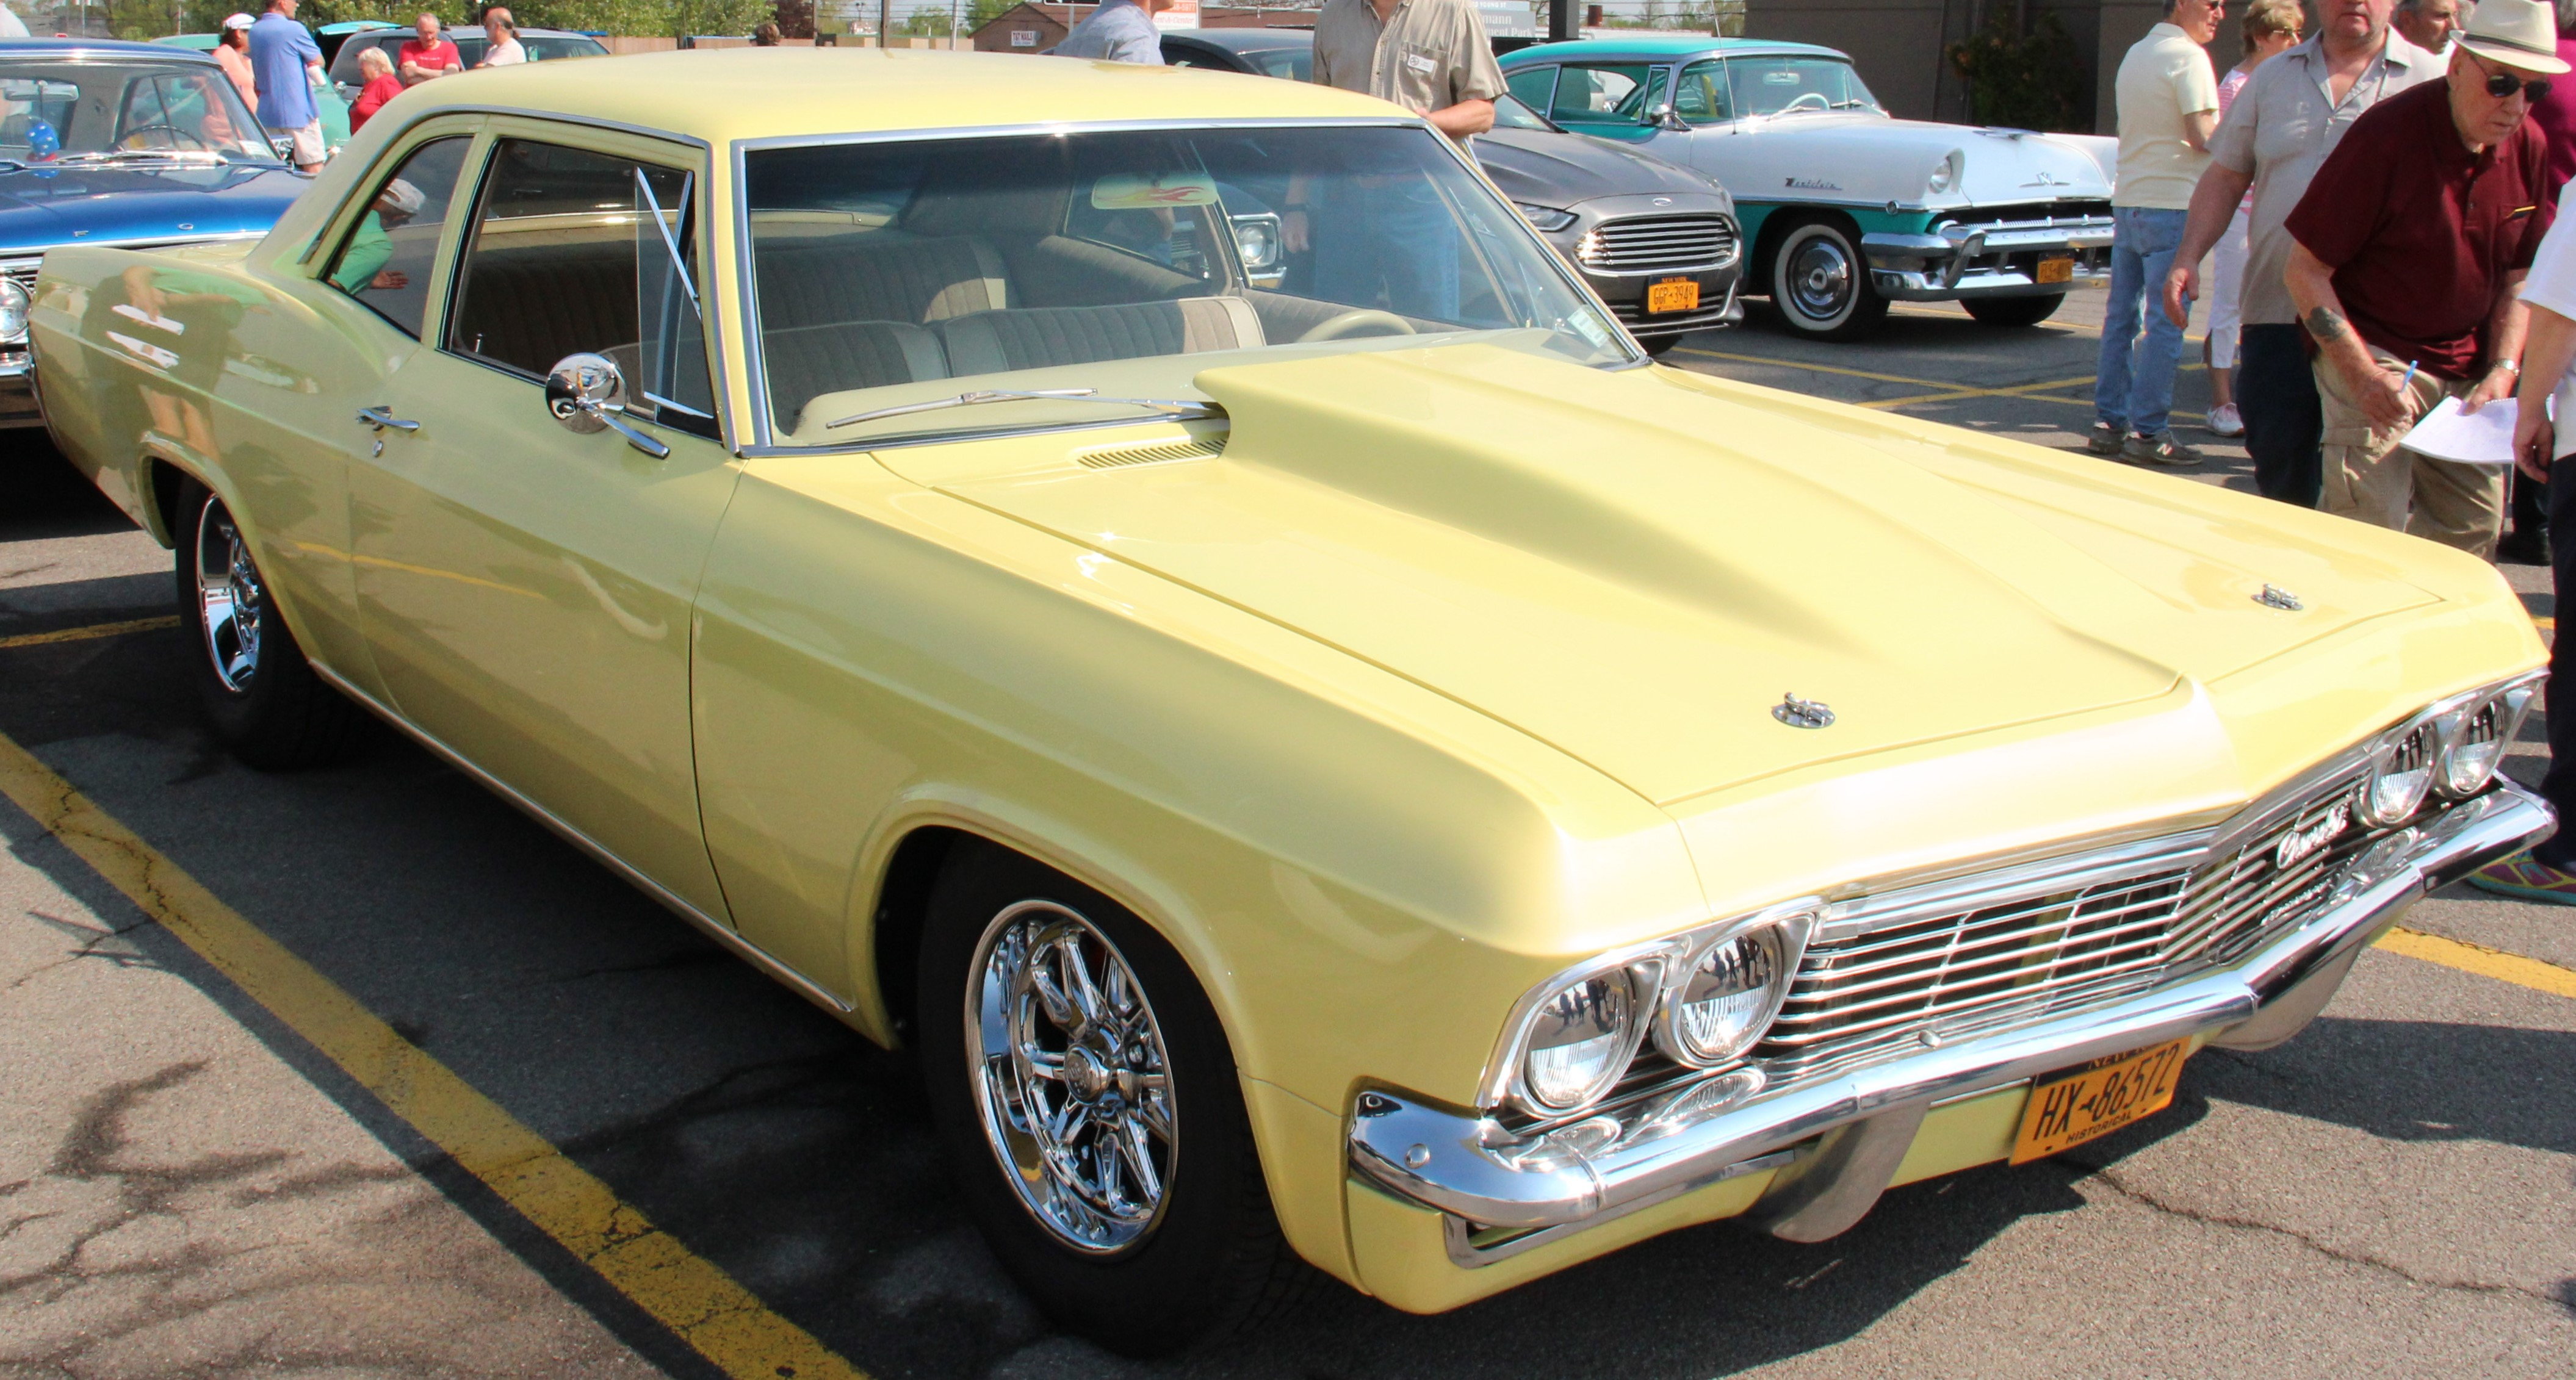 IMG_0259-Mesis-65-Chevrolet-a